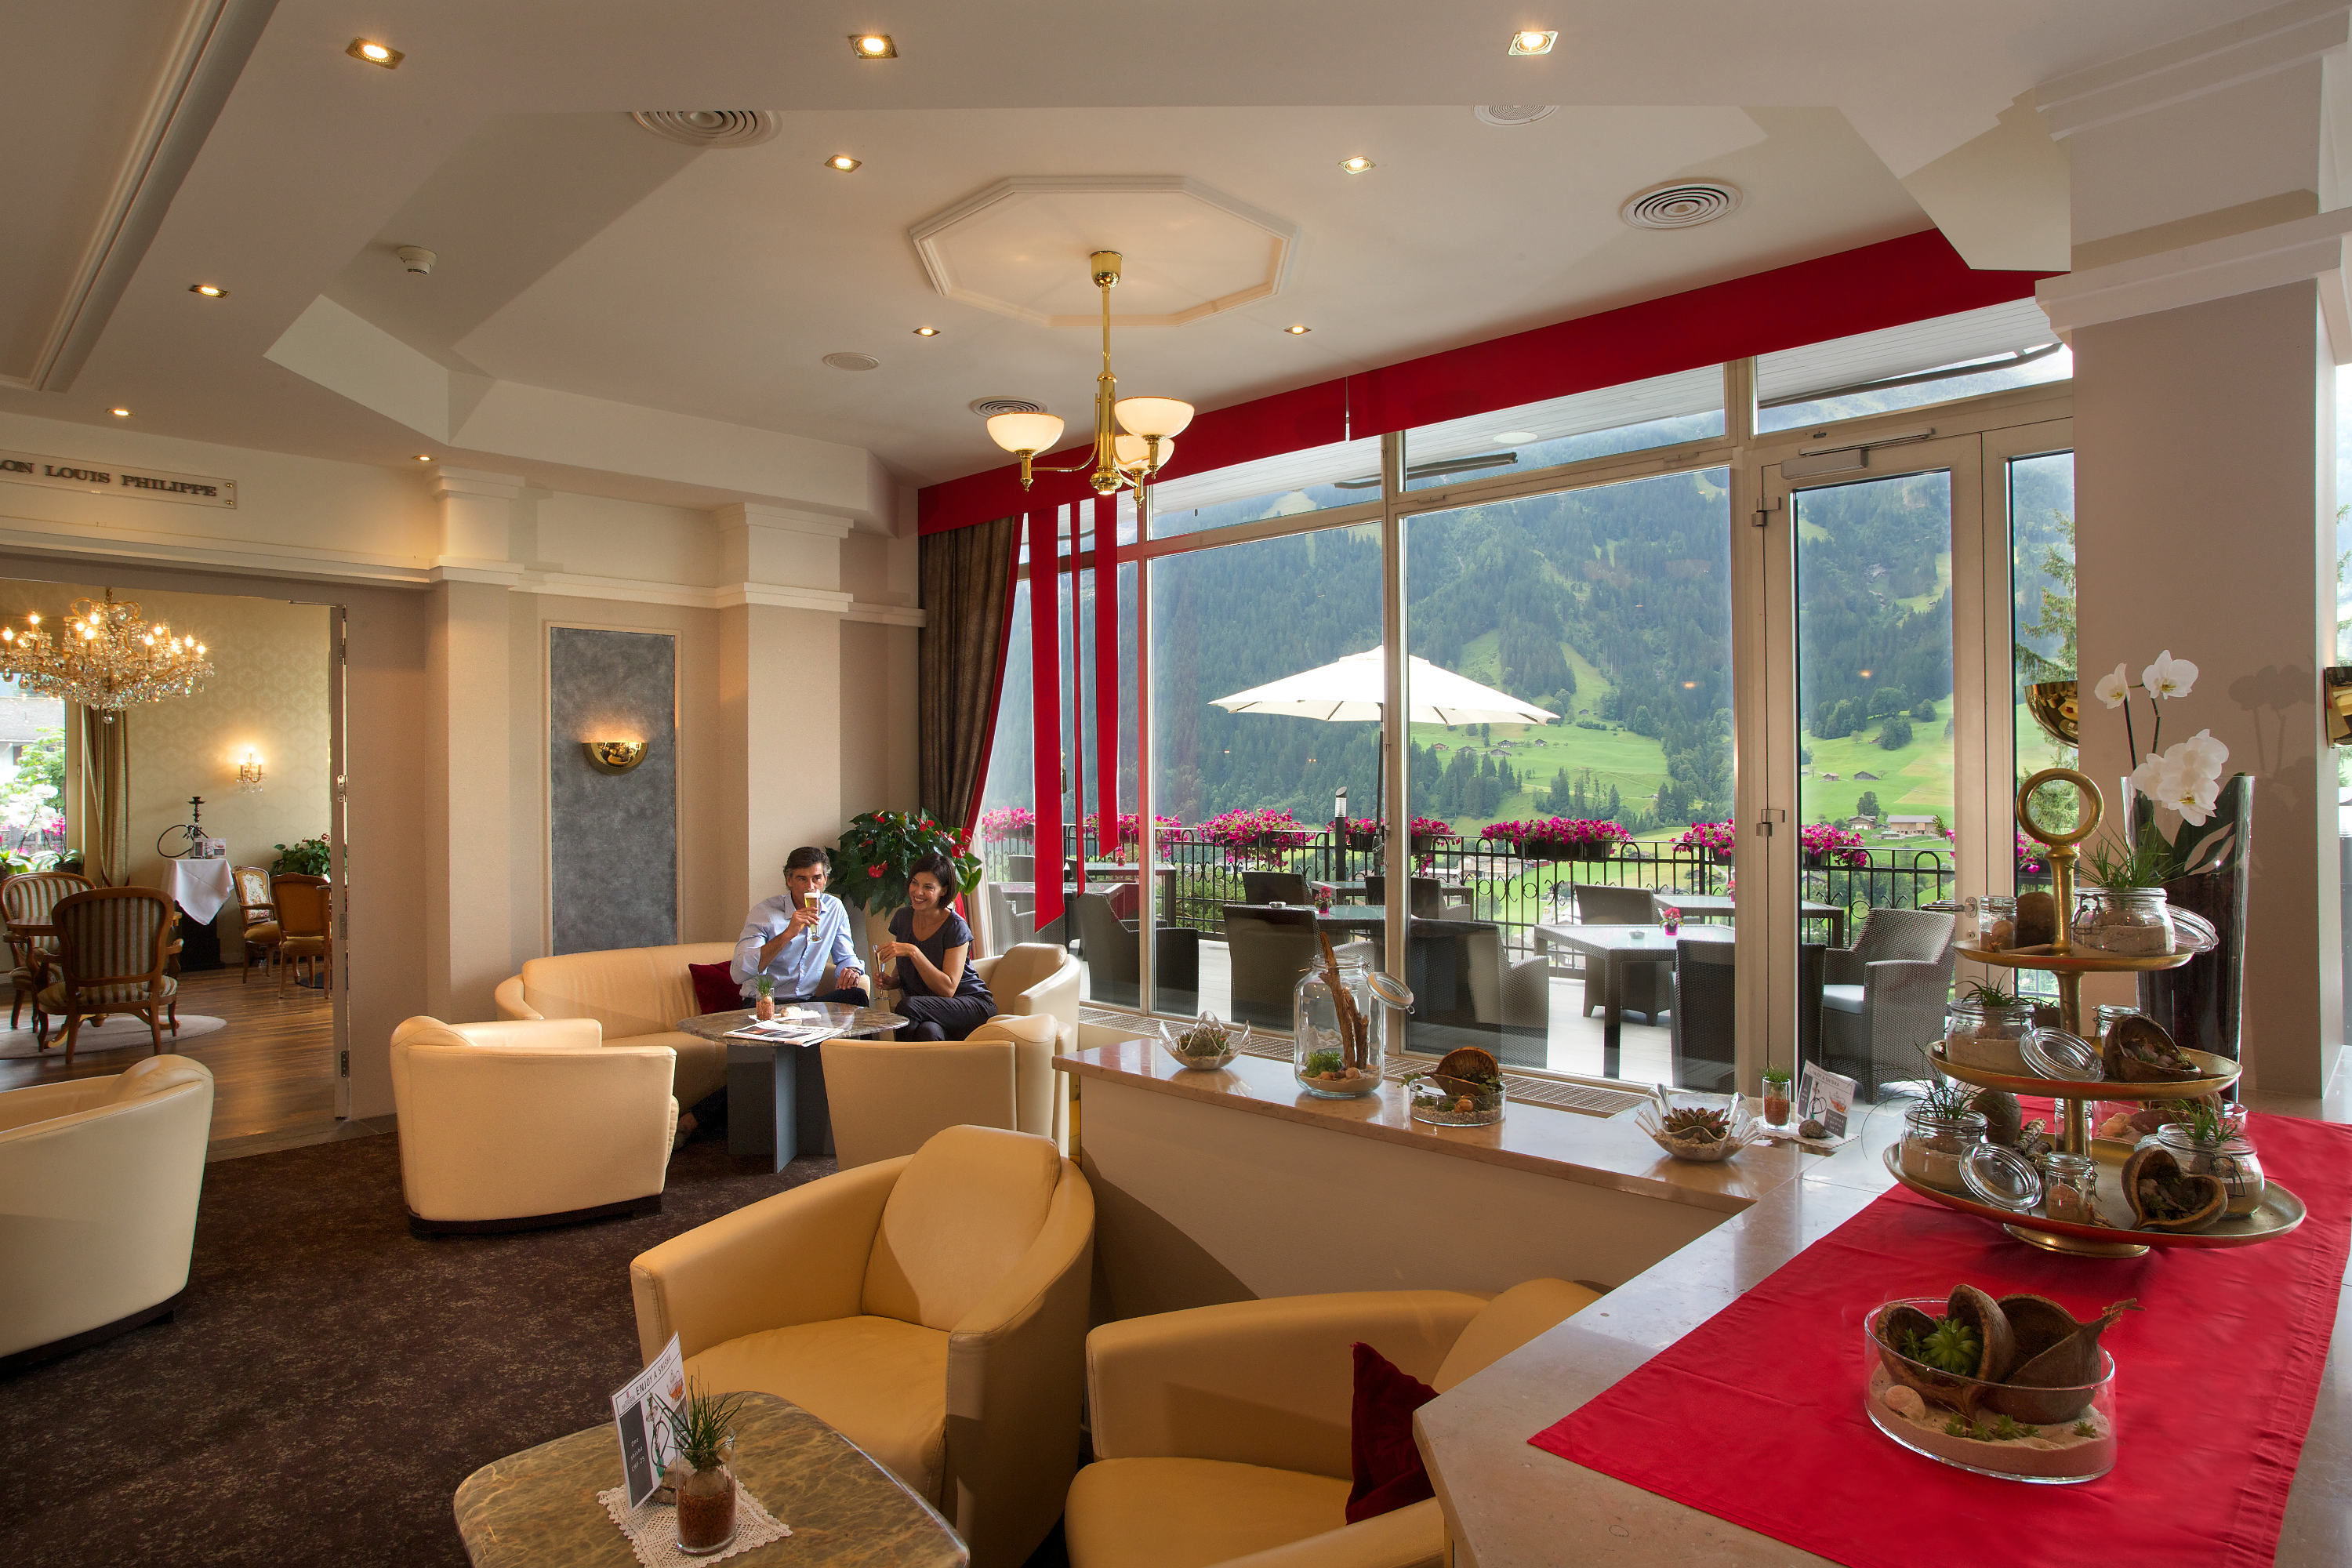 Lounge with fireplace, terrace and smoker's lounge · Belvedere Swiss Quality Hotel Grindelwald